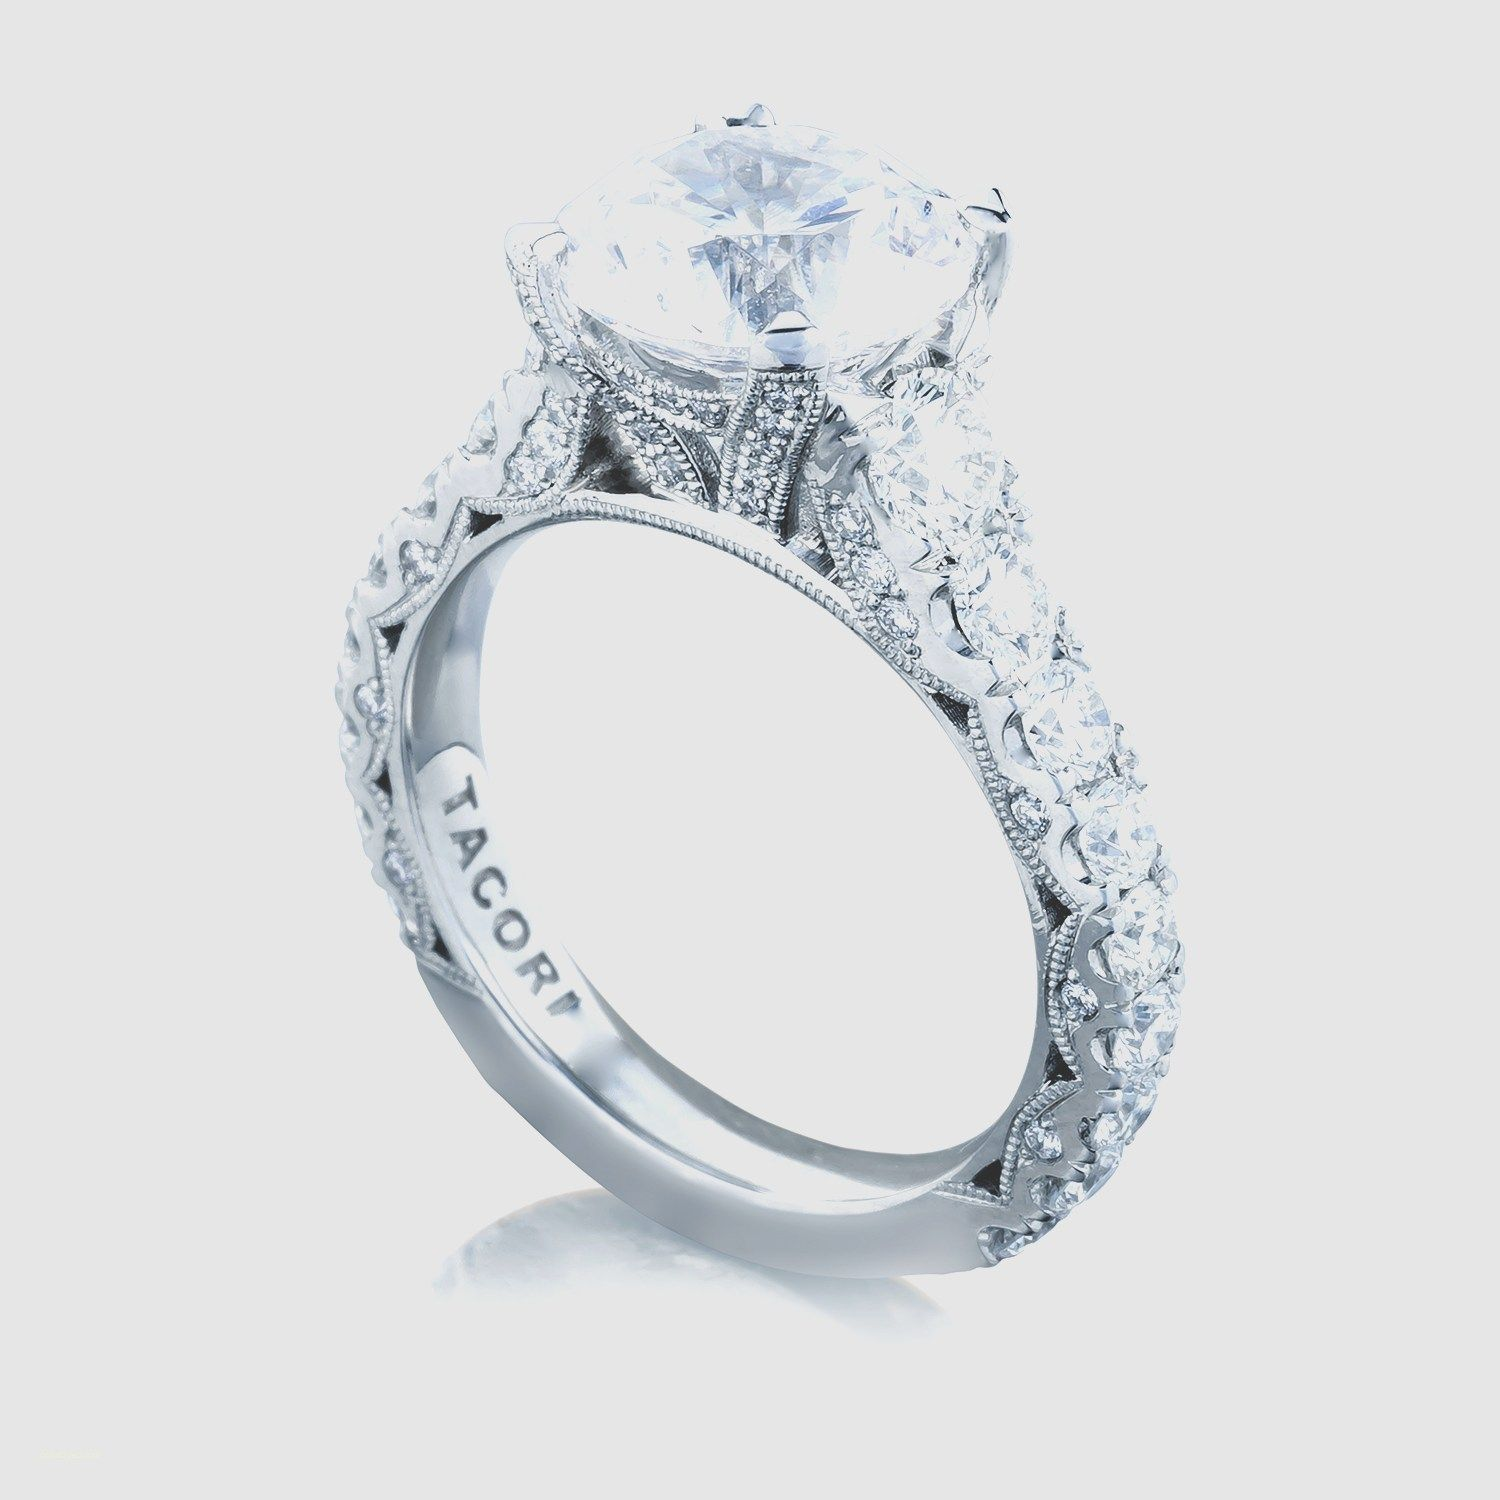 engagement ring item stone simply collection three brothers solomon tacori design diamond rings